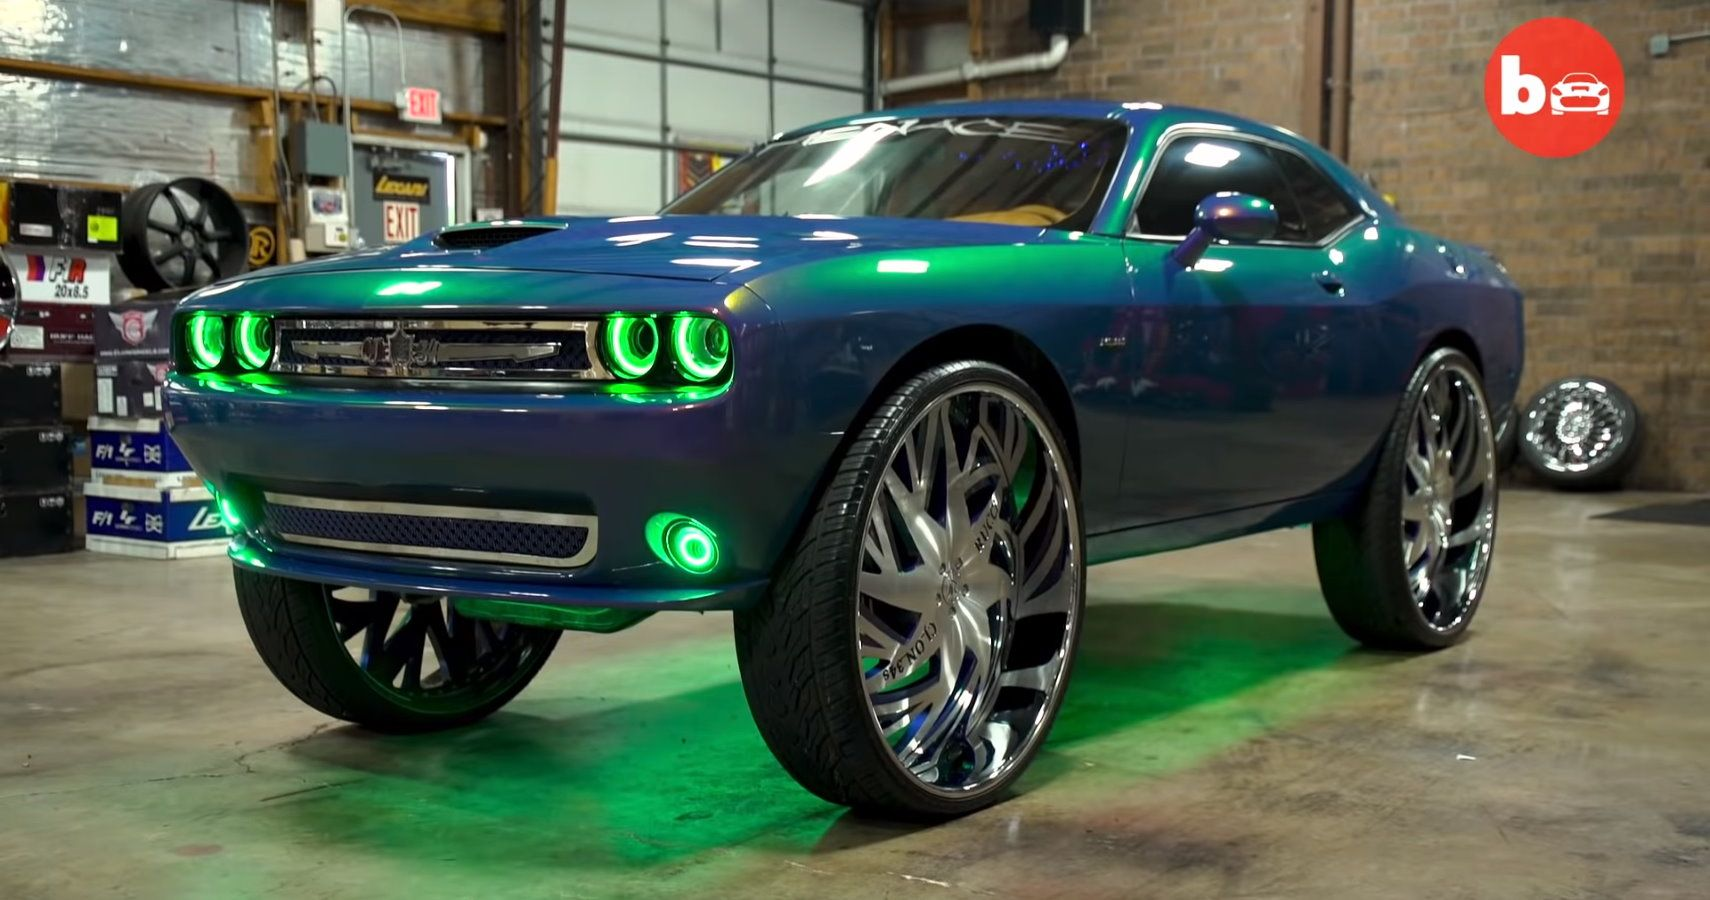 Ridiculous Dodge Challenger Has Massive 34-Inch Rims And ...